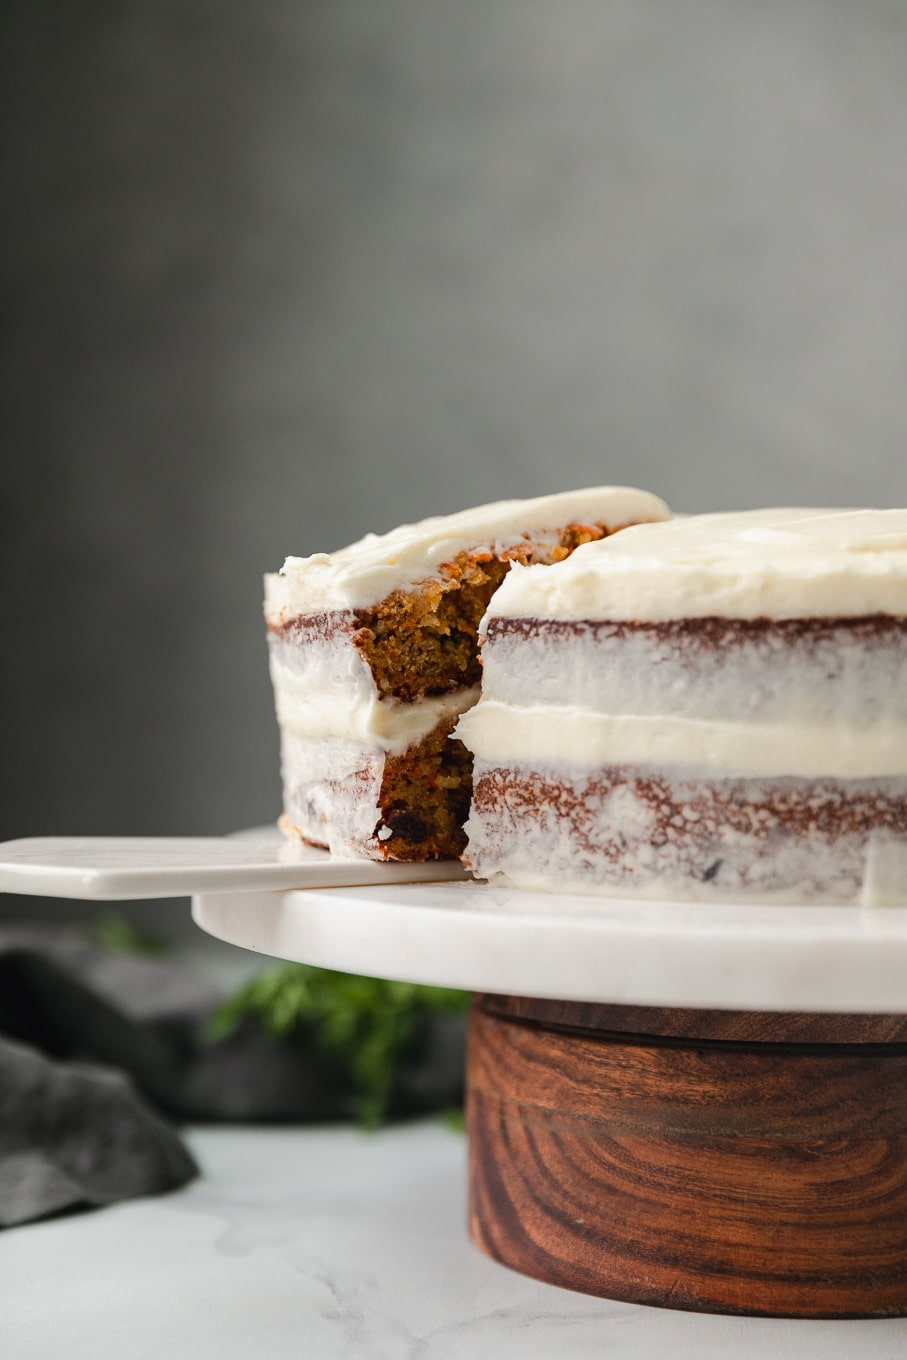 Forward facing shot of a carrot cake on a marble and wooden cake stand with a slice being taken out of the cake